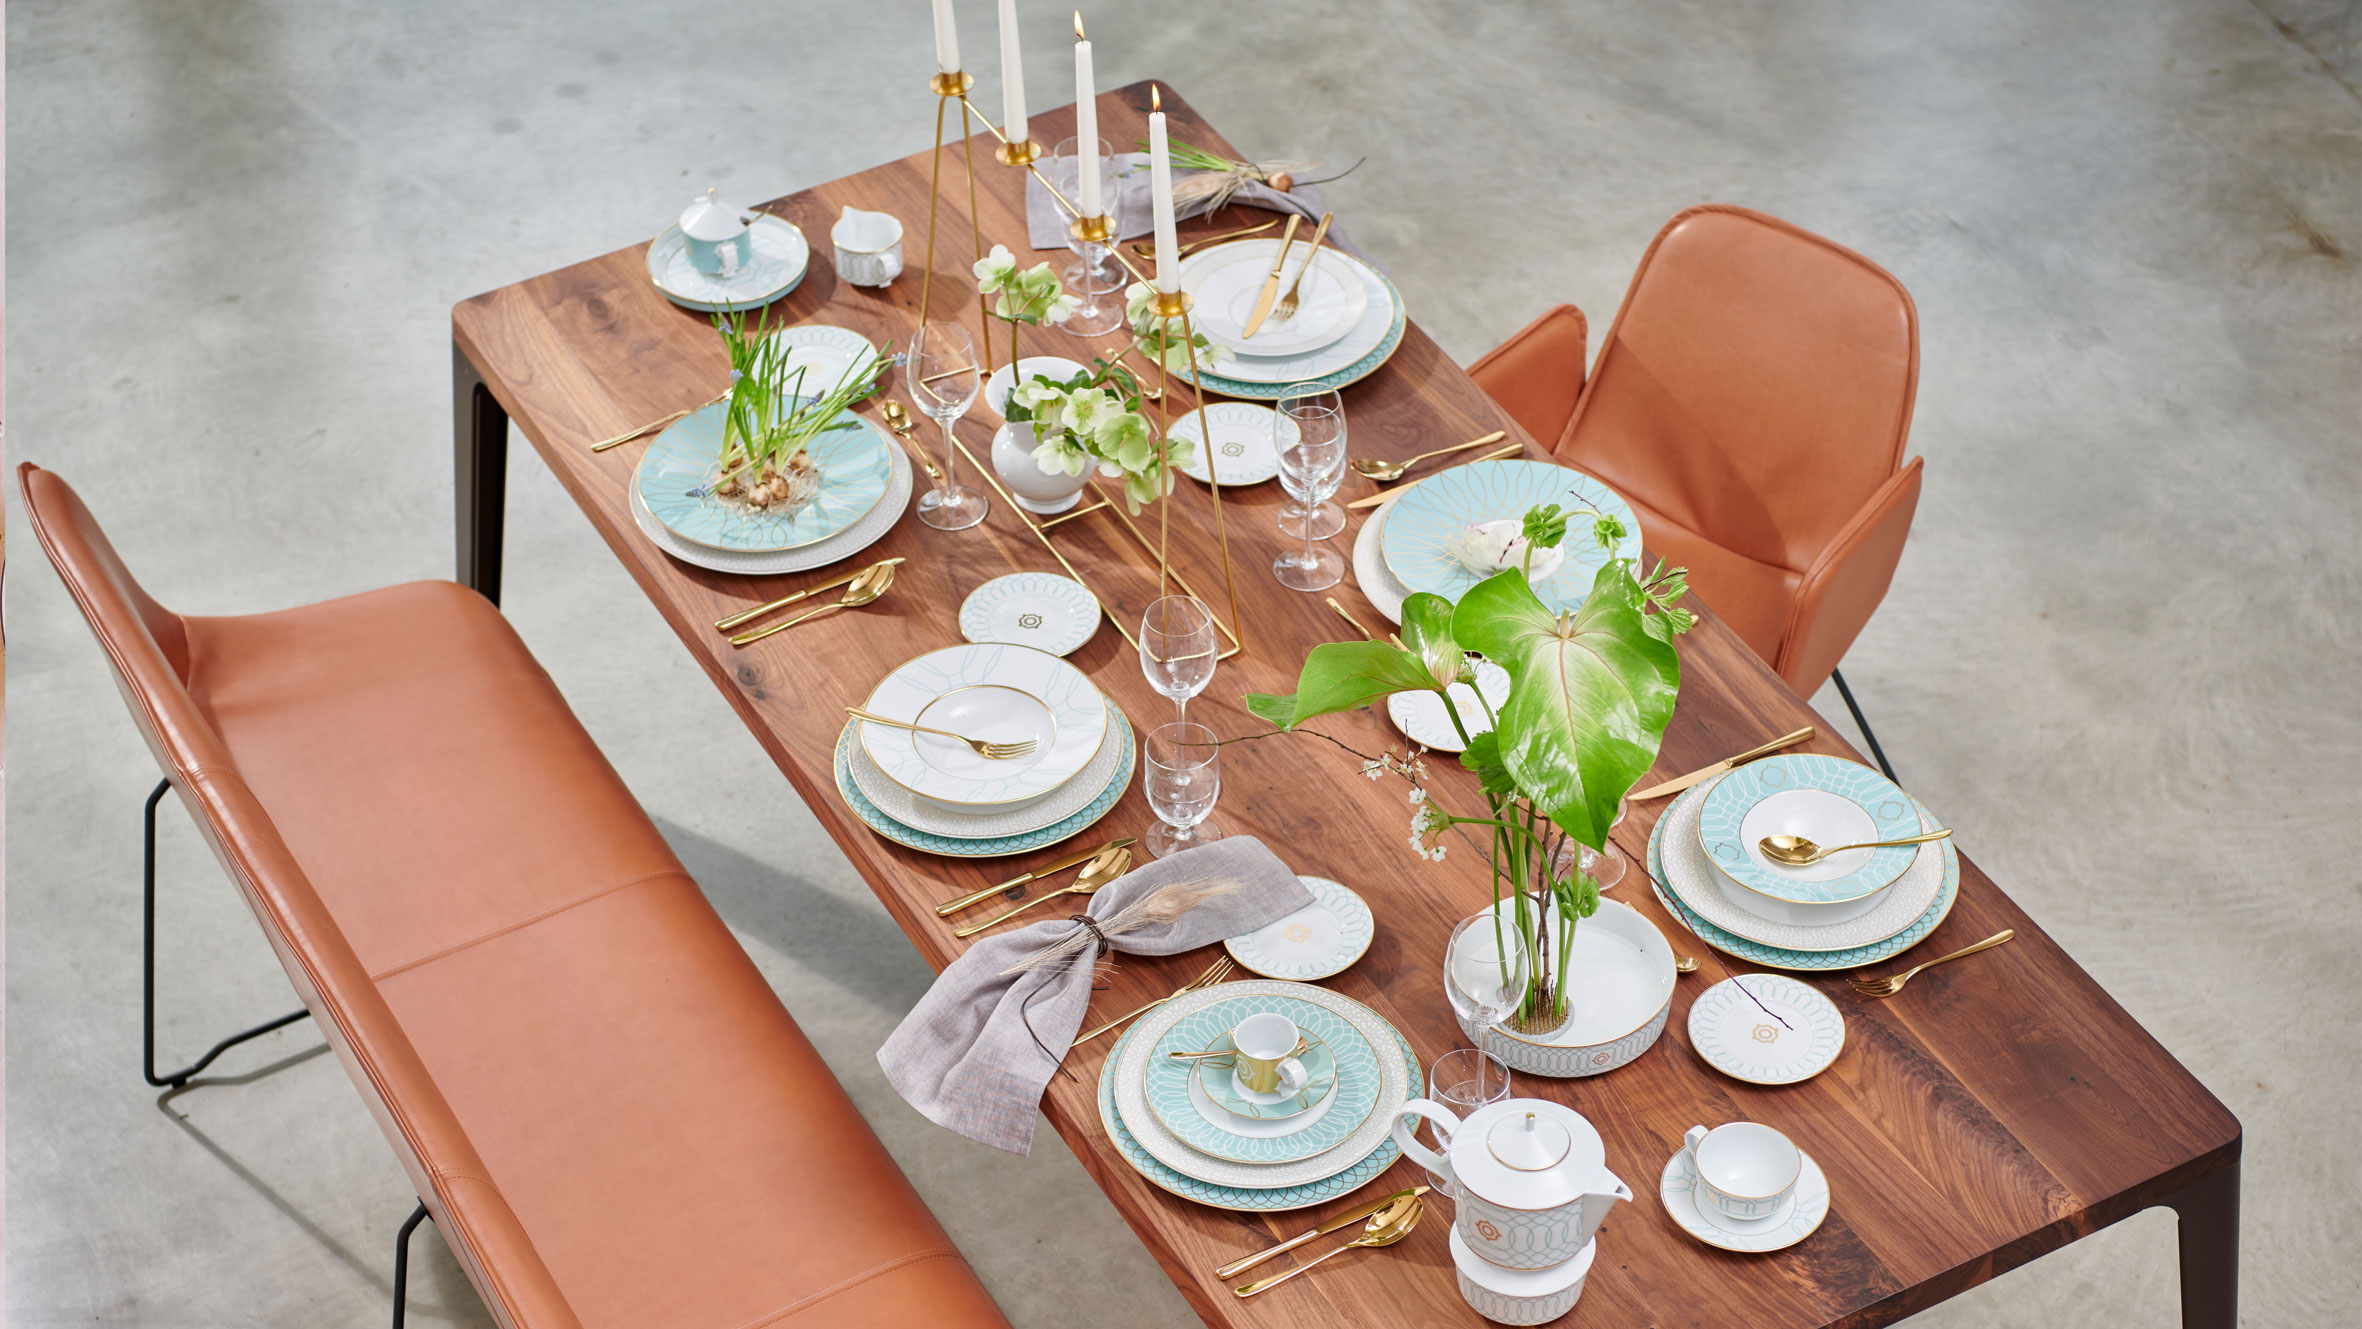 Laid table with Carlo Este